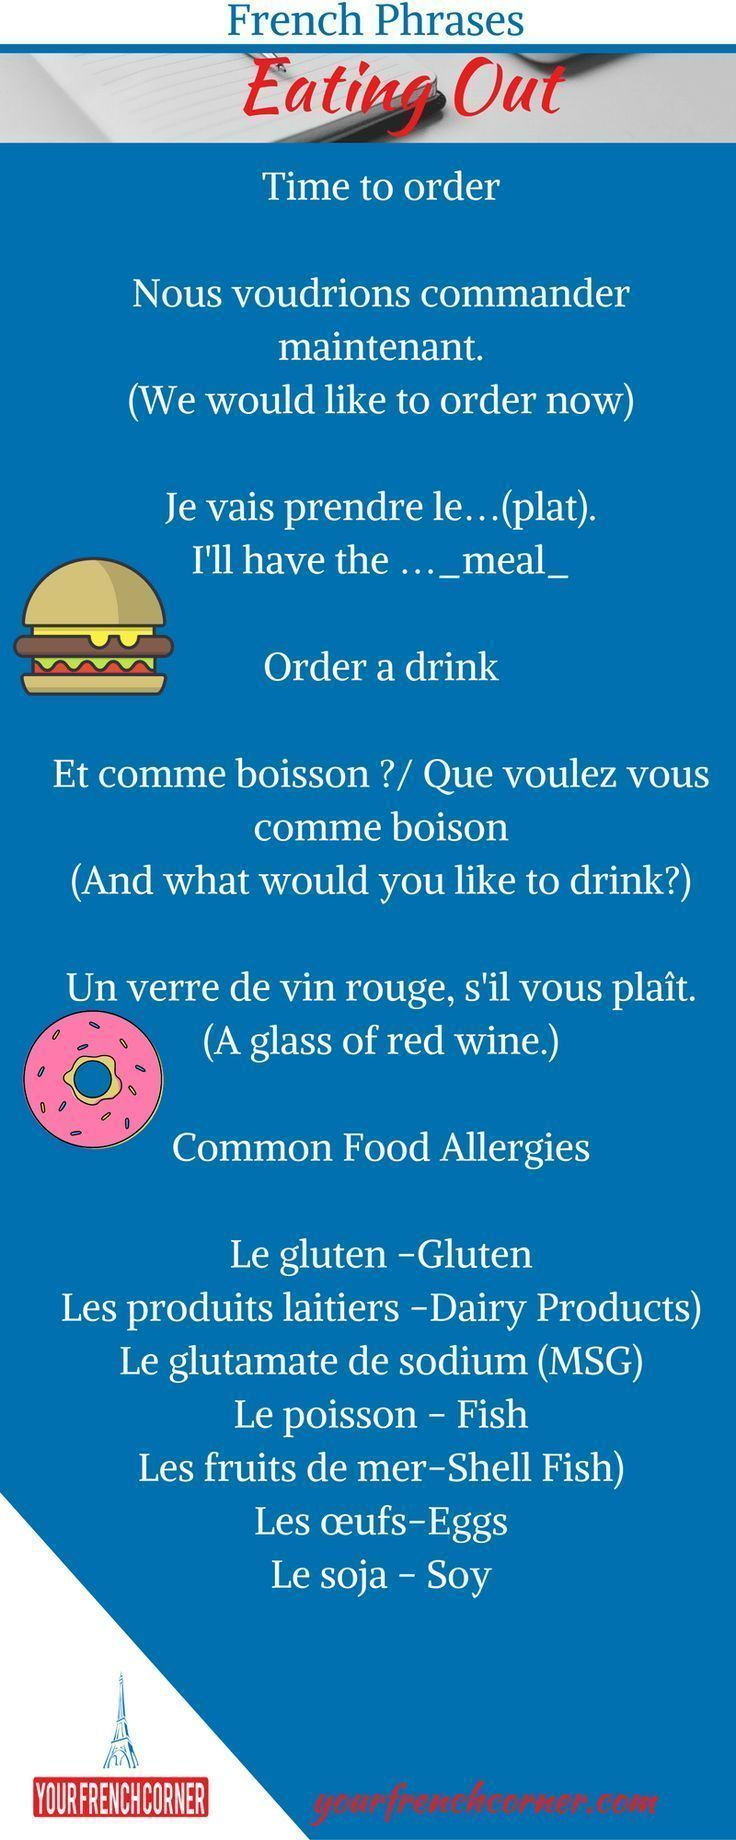 48 best st martinst maarten images on pinterest french language 61 french phrases for travelers a survival guide nvjuhfo Gallery